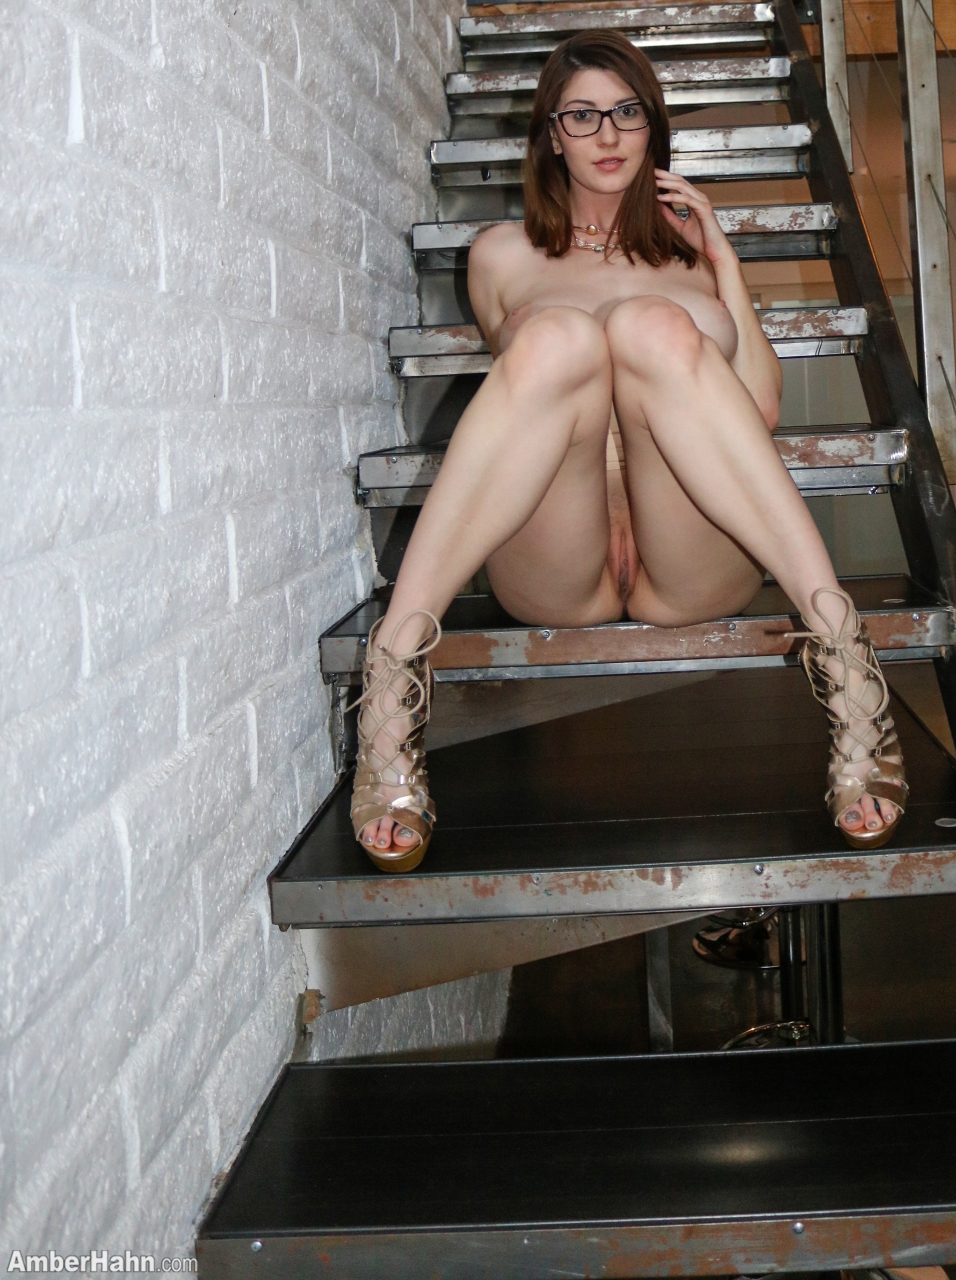 Glasses wearing solo girl Amber Hahn flashes no panty upskirts on staircase